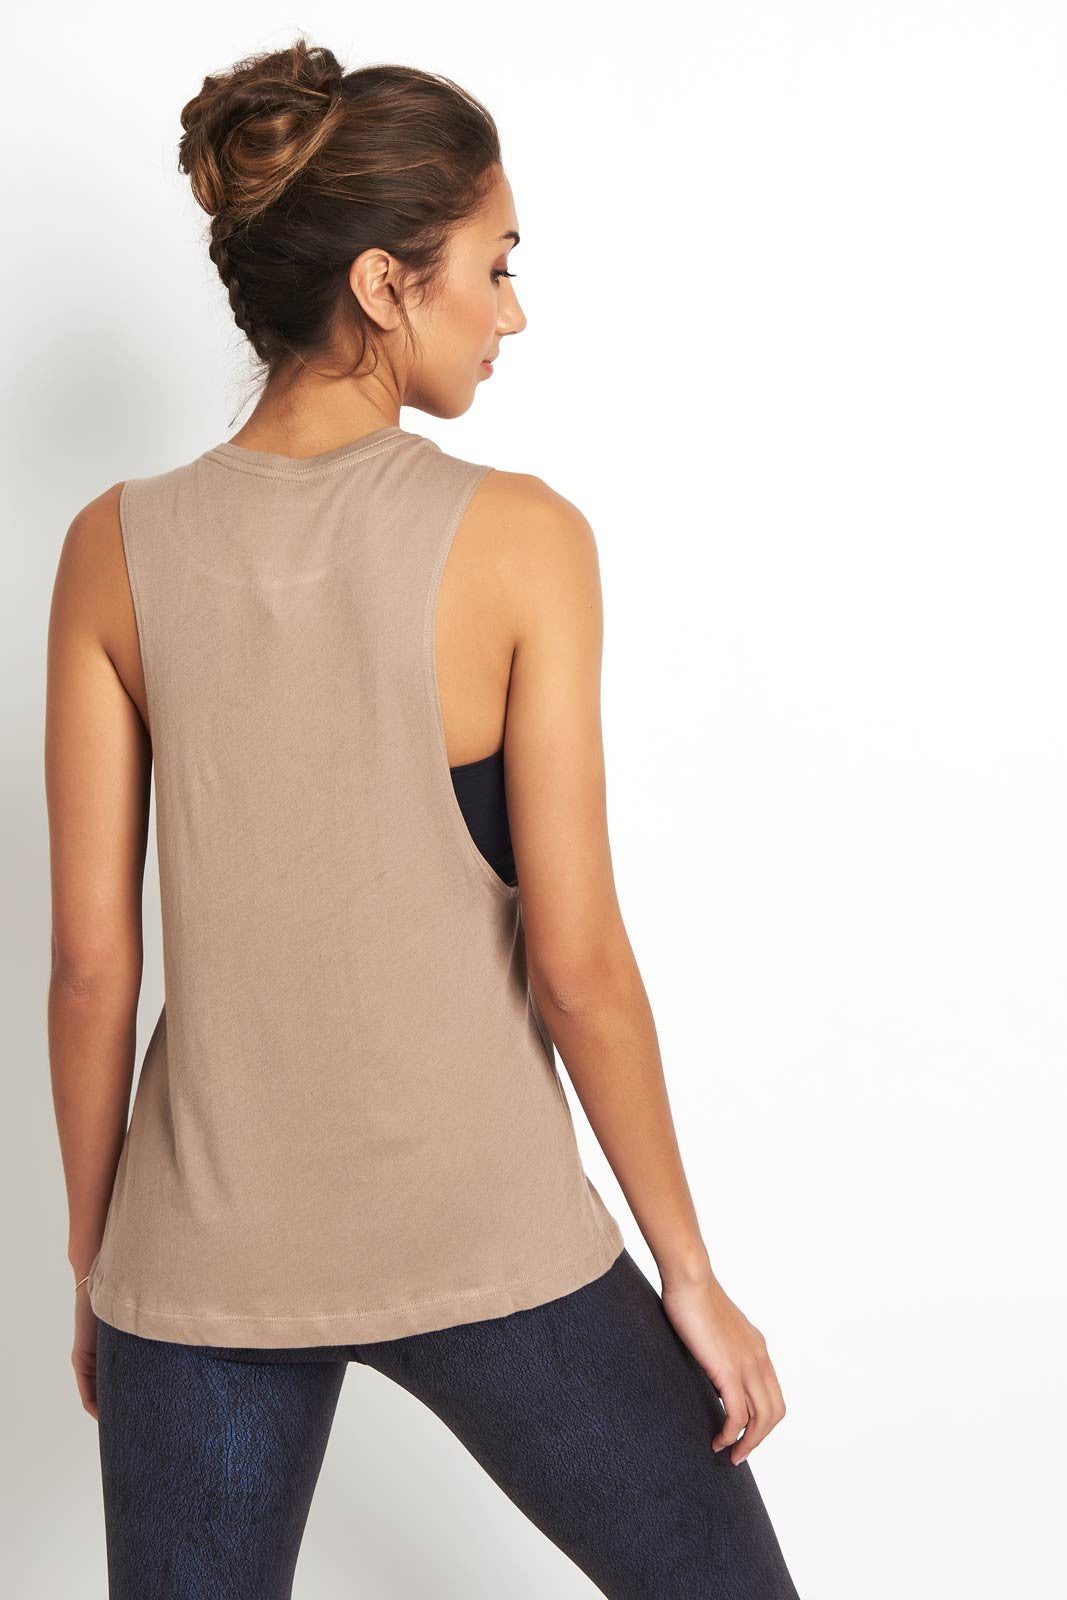 Alo Yoga Wanderlust Muscle Tank Gravel image 2 - The Sports Edit